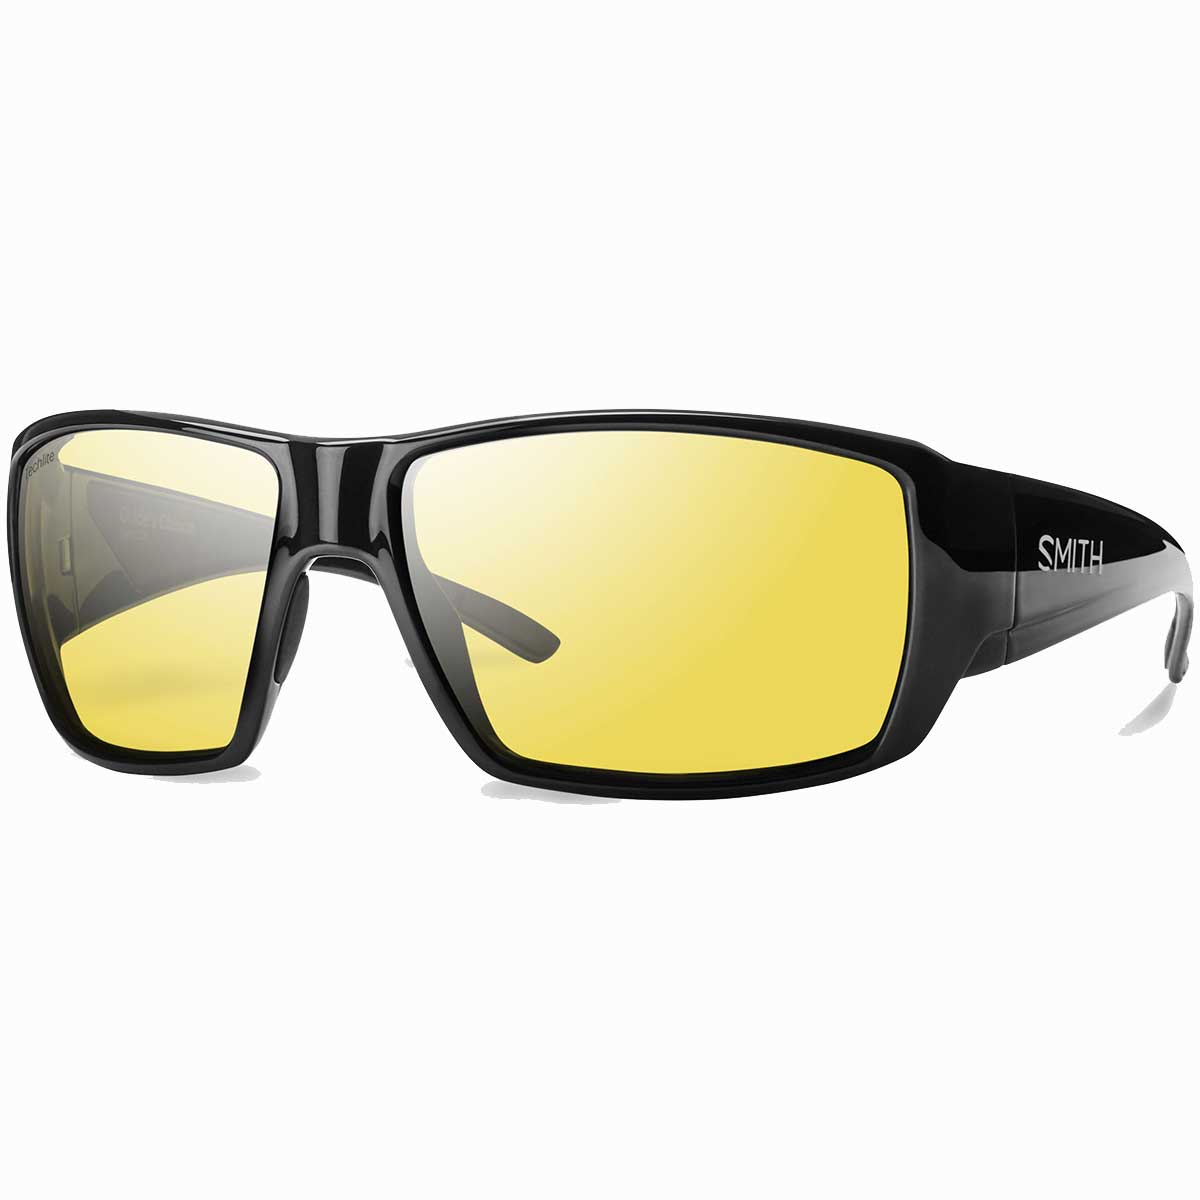 Smith Guides Choice Sunglasses Polarized in Black with Ignitor